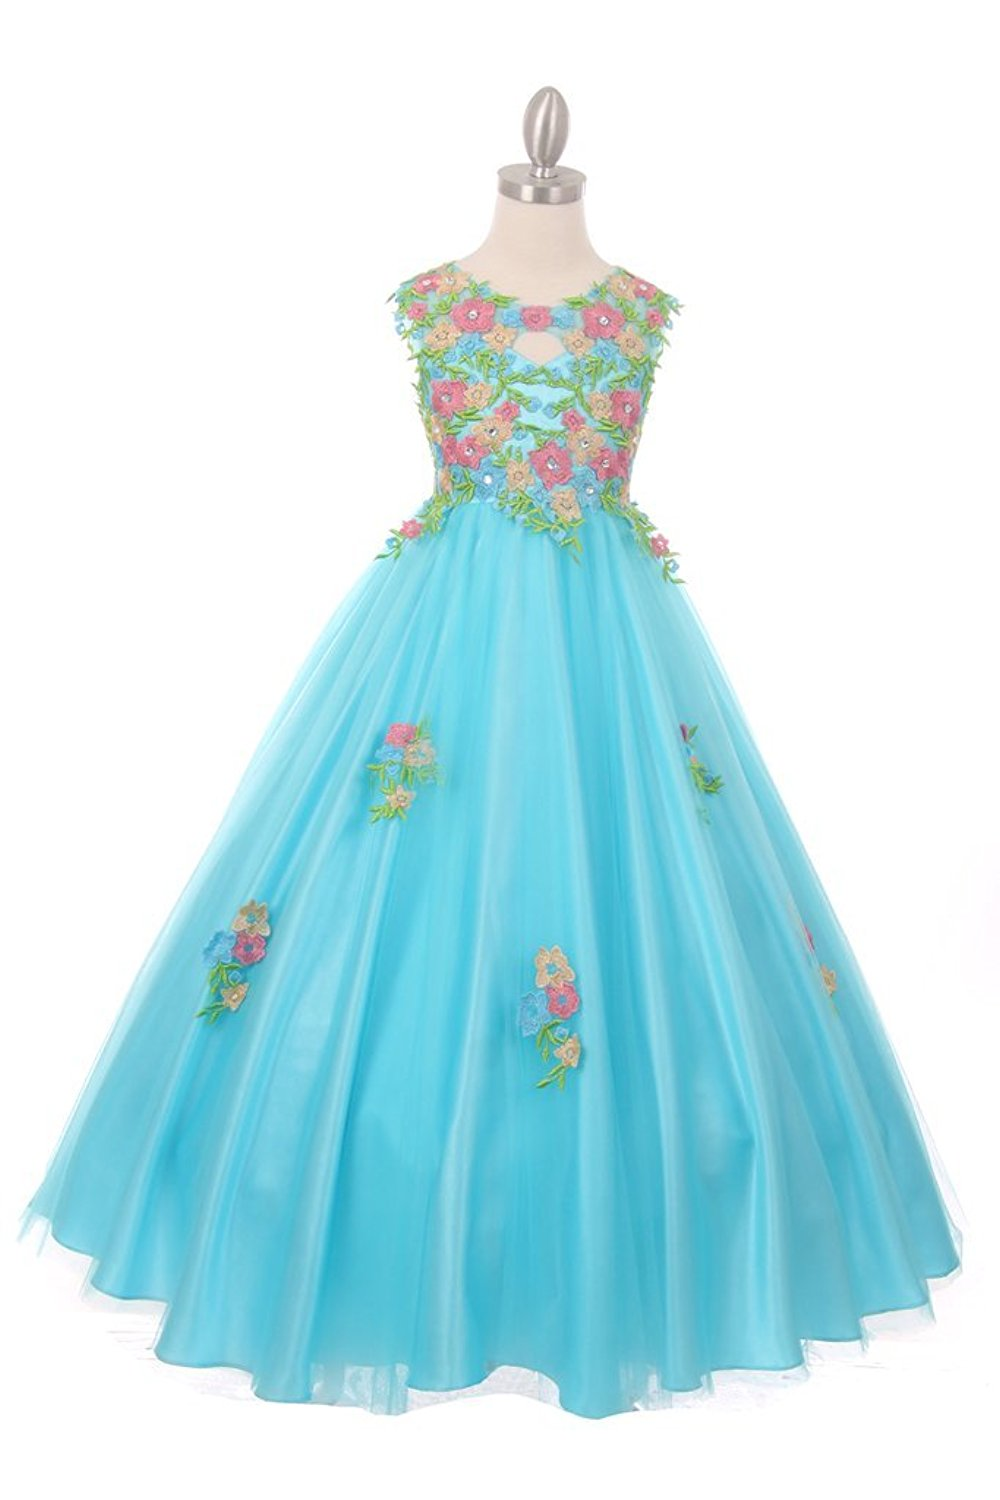 The Couture Dresses Beautiful All Over Hand Placed and Sewn Flower Embroidery Lace Dress, Aqua 10